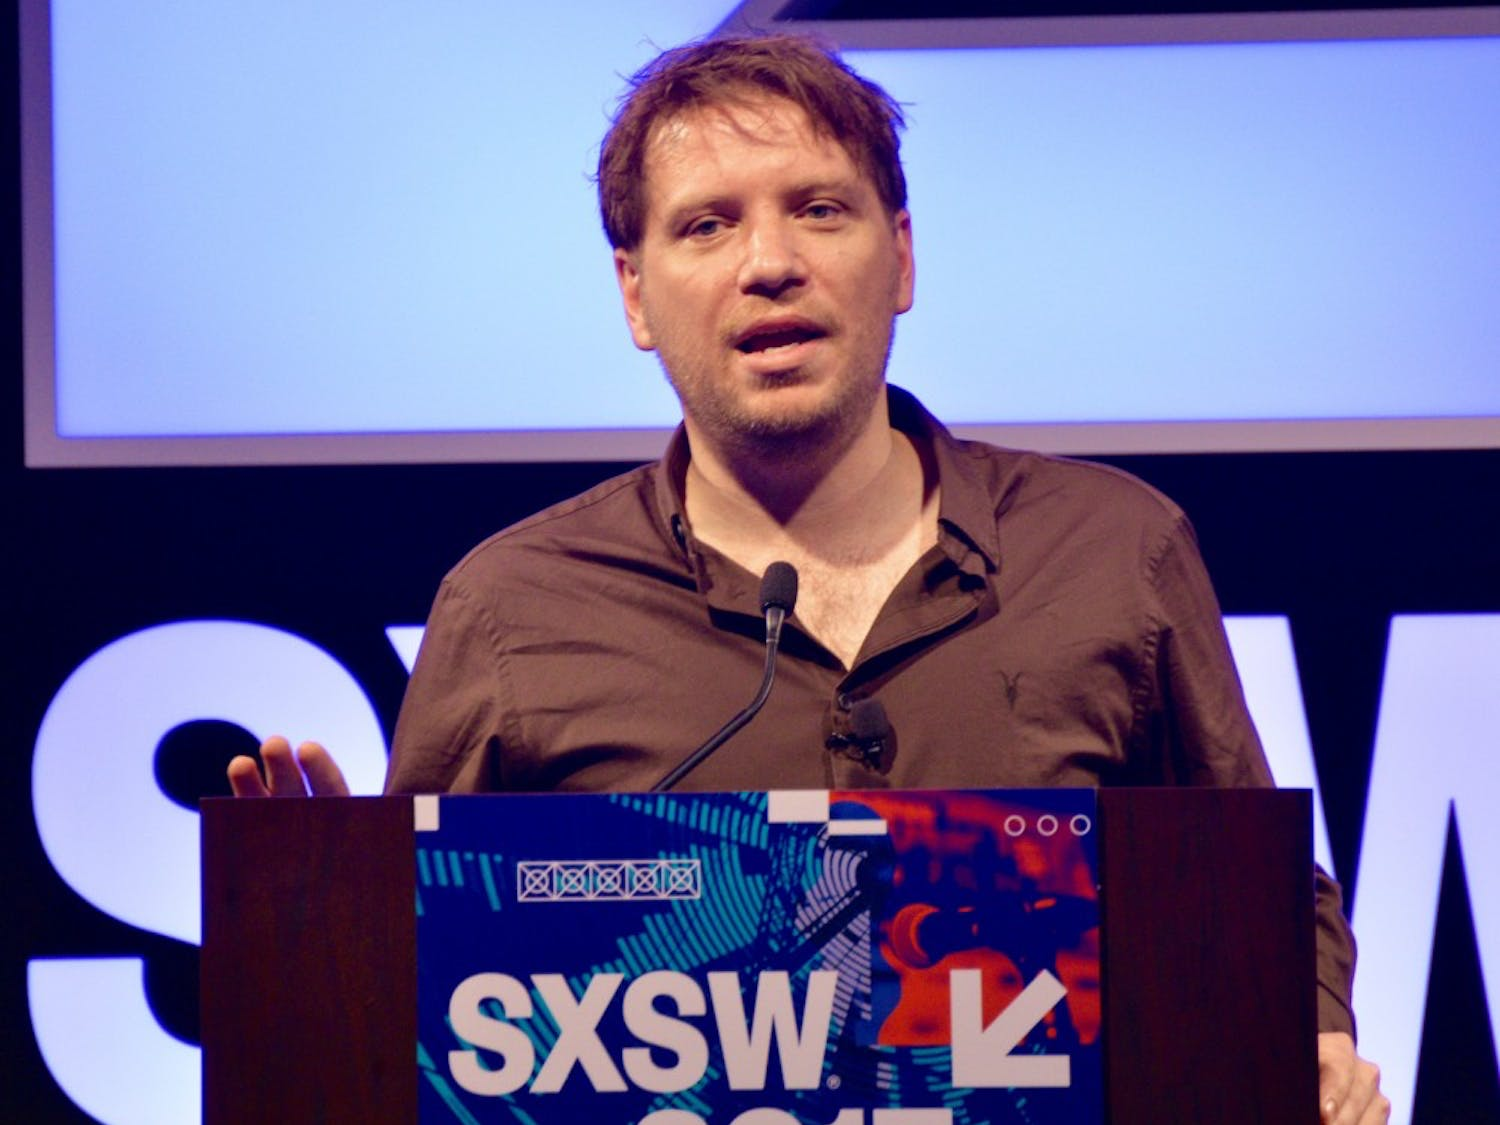 Gareth Edwards discussed his experiences with directing and visual effects, offering advice to filmmakers.